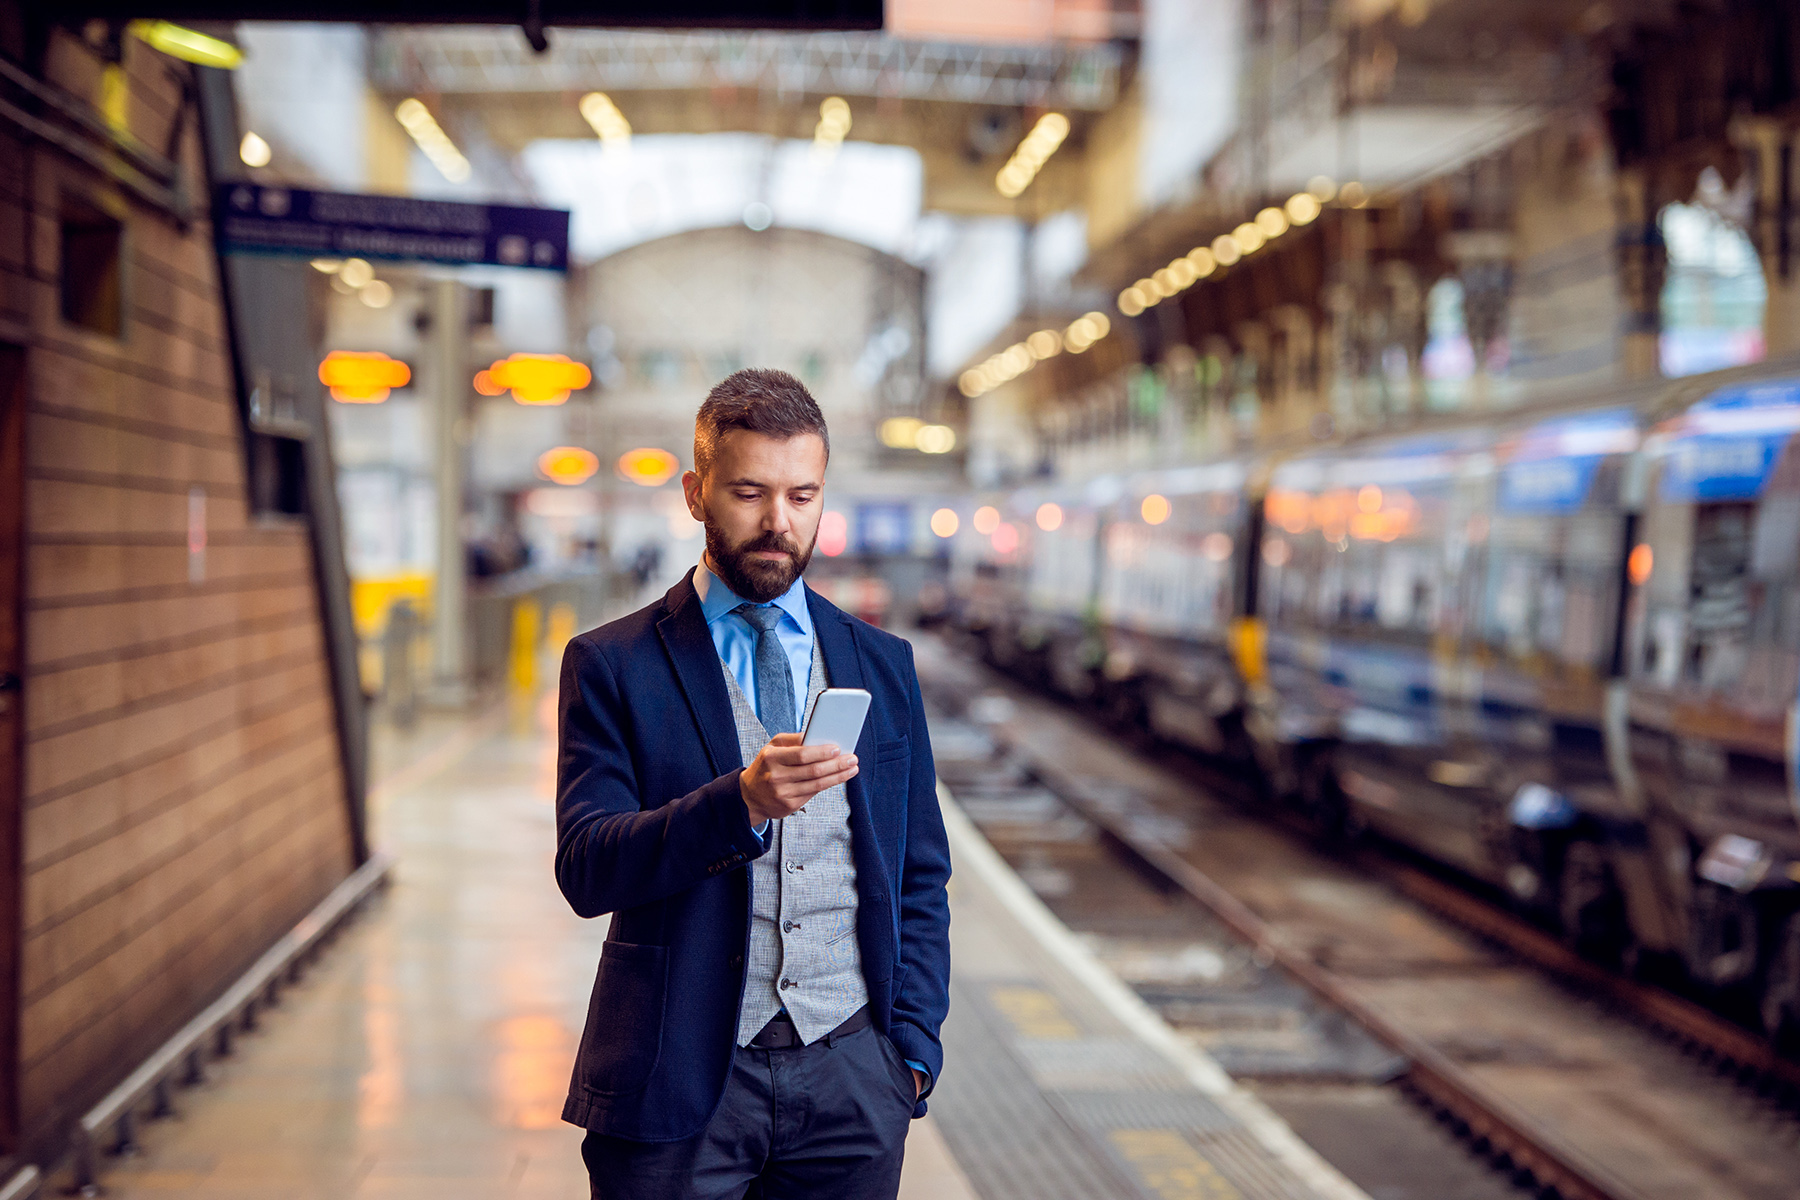 Businessman using his phone in a metro station